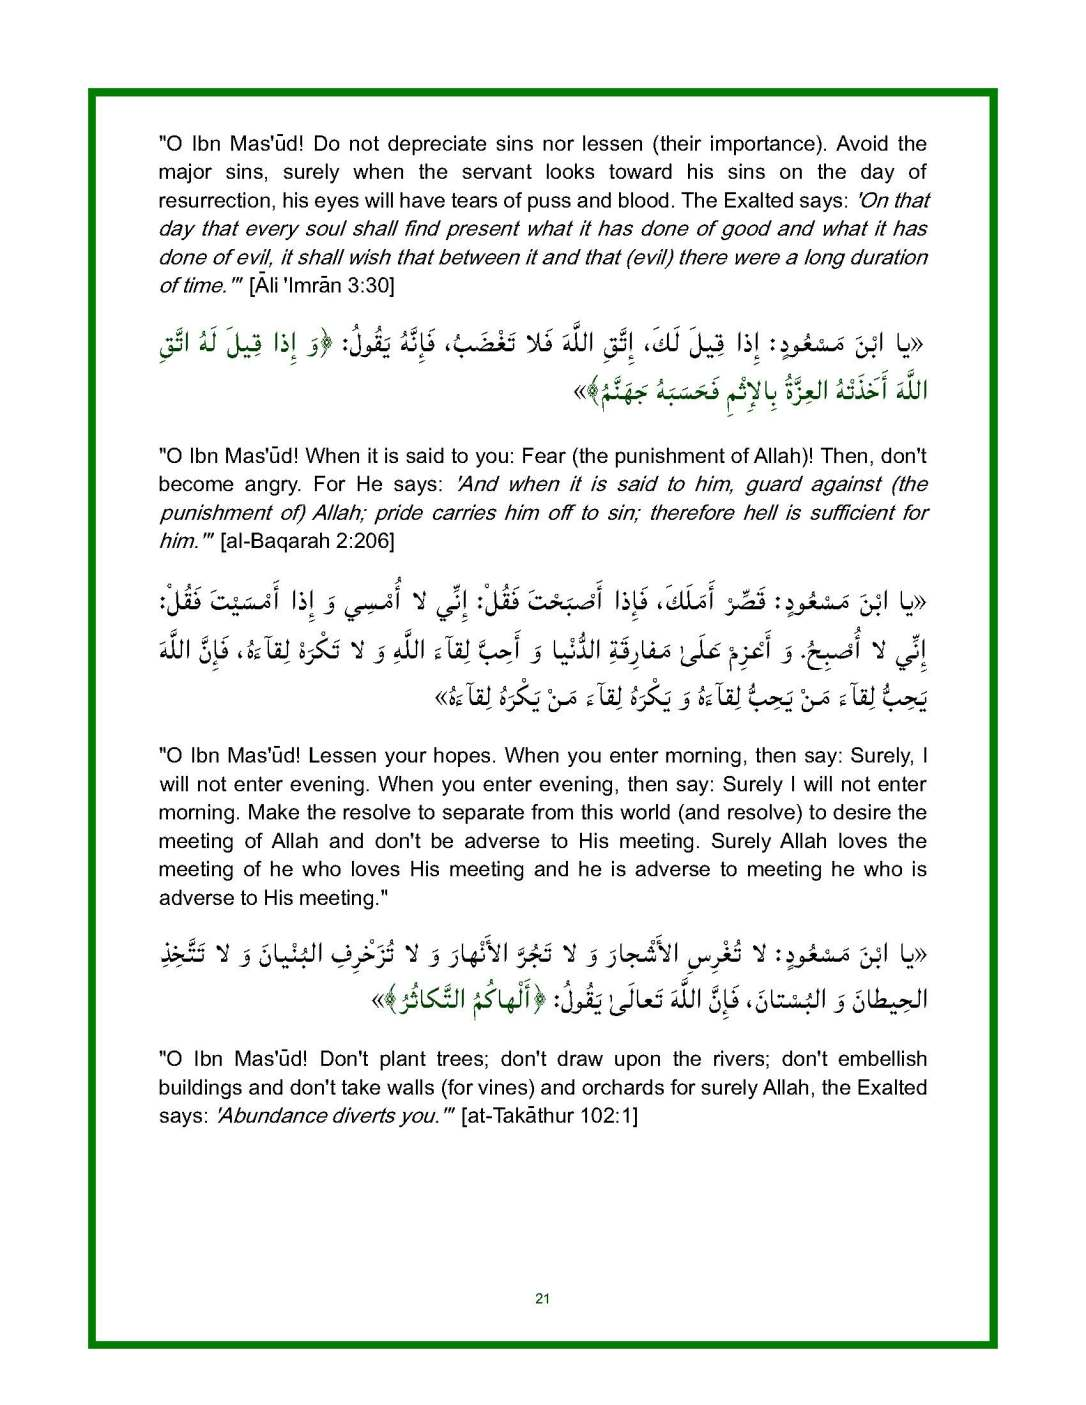 Spiritual-Advice-of-the-Messenger-of-Allah-for-Ibn-Masud-unlocked_Page_21